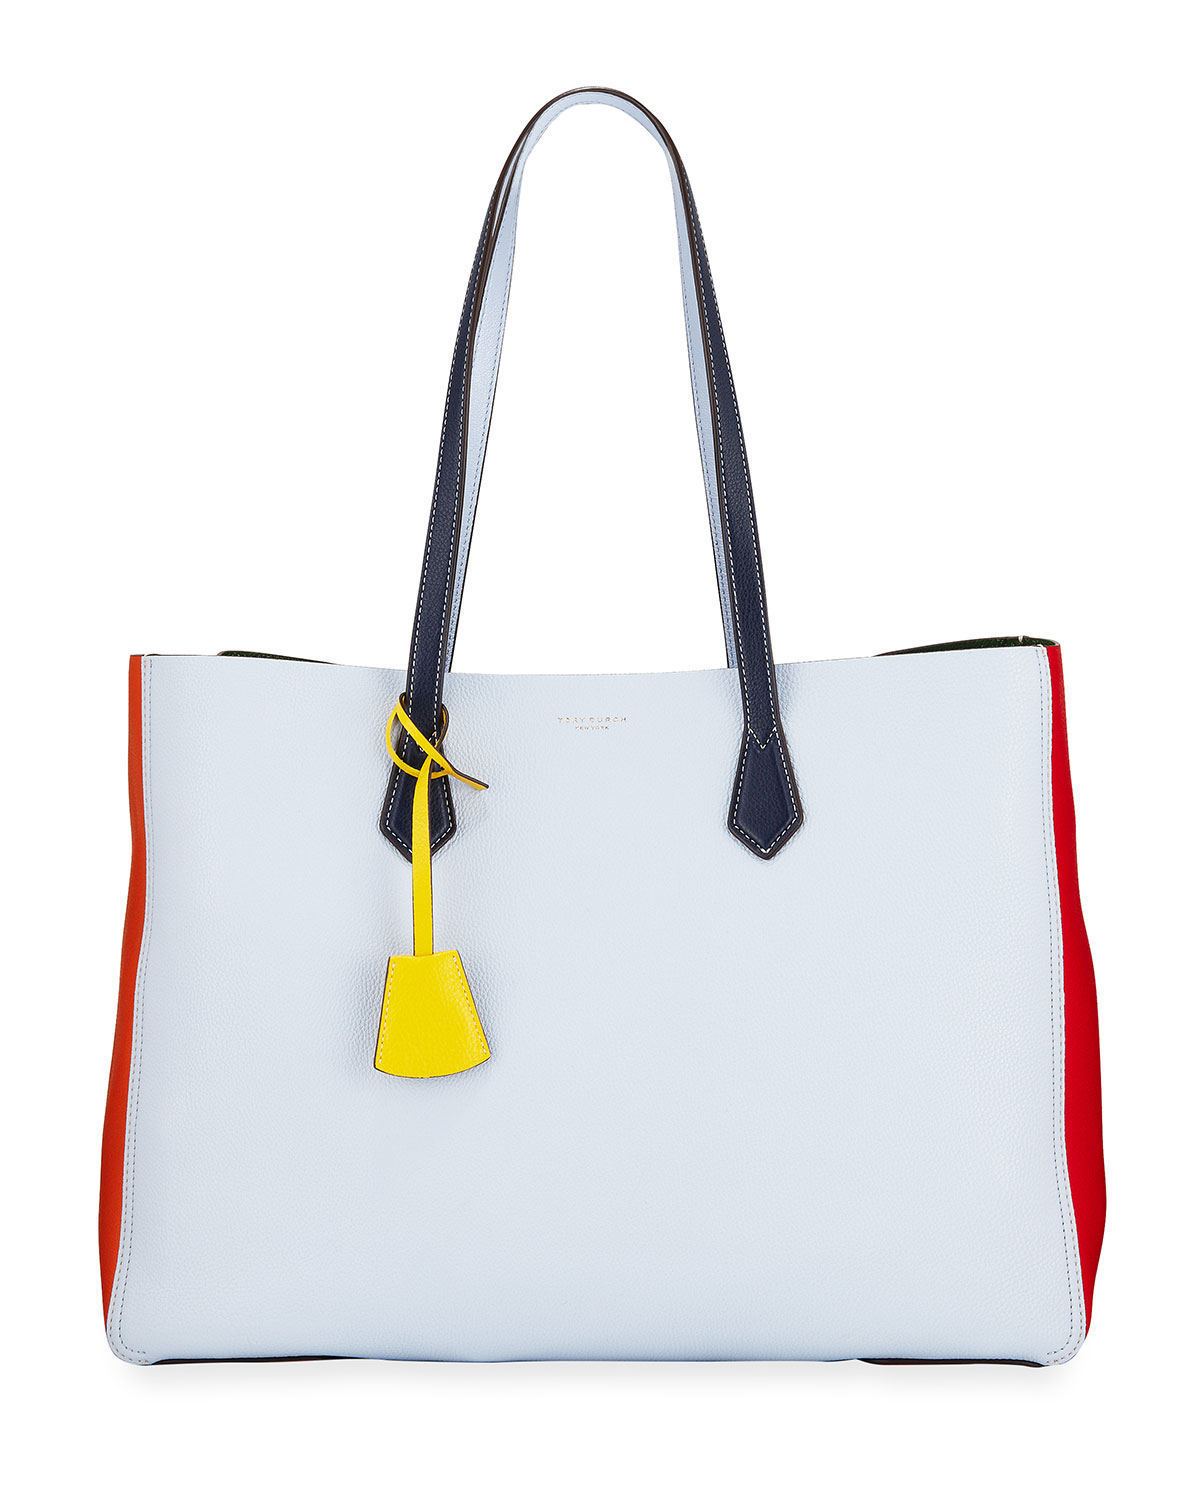 7ffd3ef503f Tory Burch Perry Large Colorblock Tote Bag | Neiman Marcus